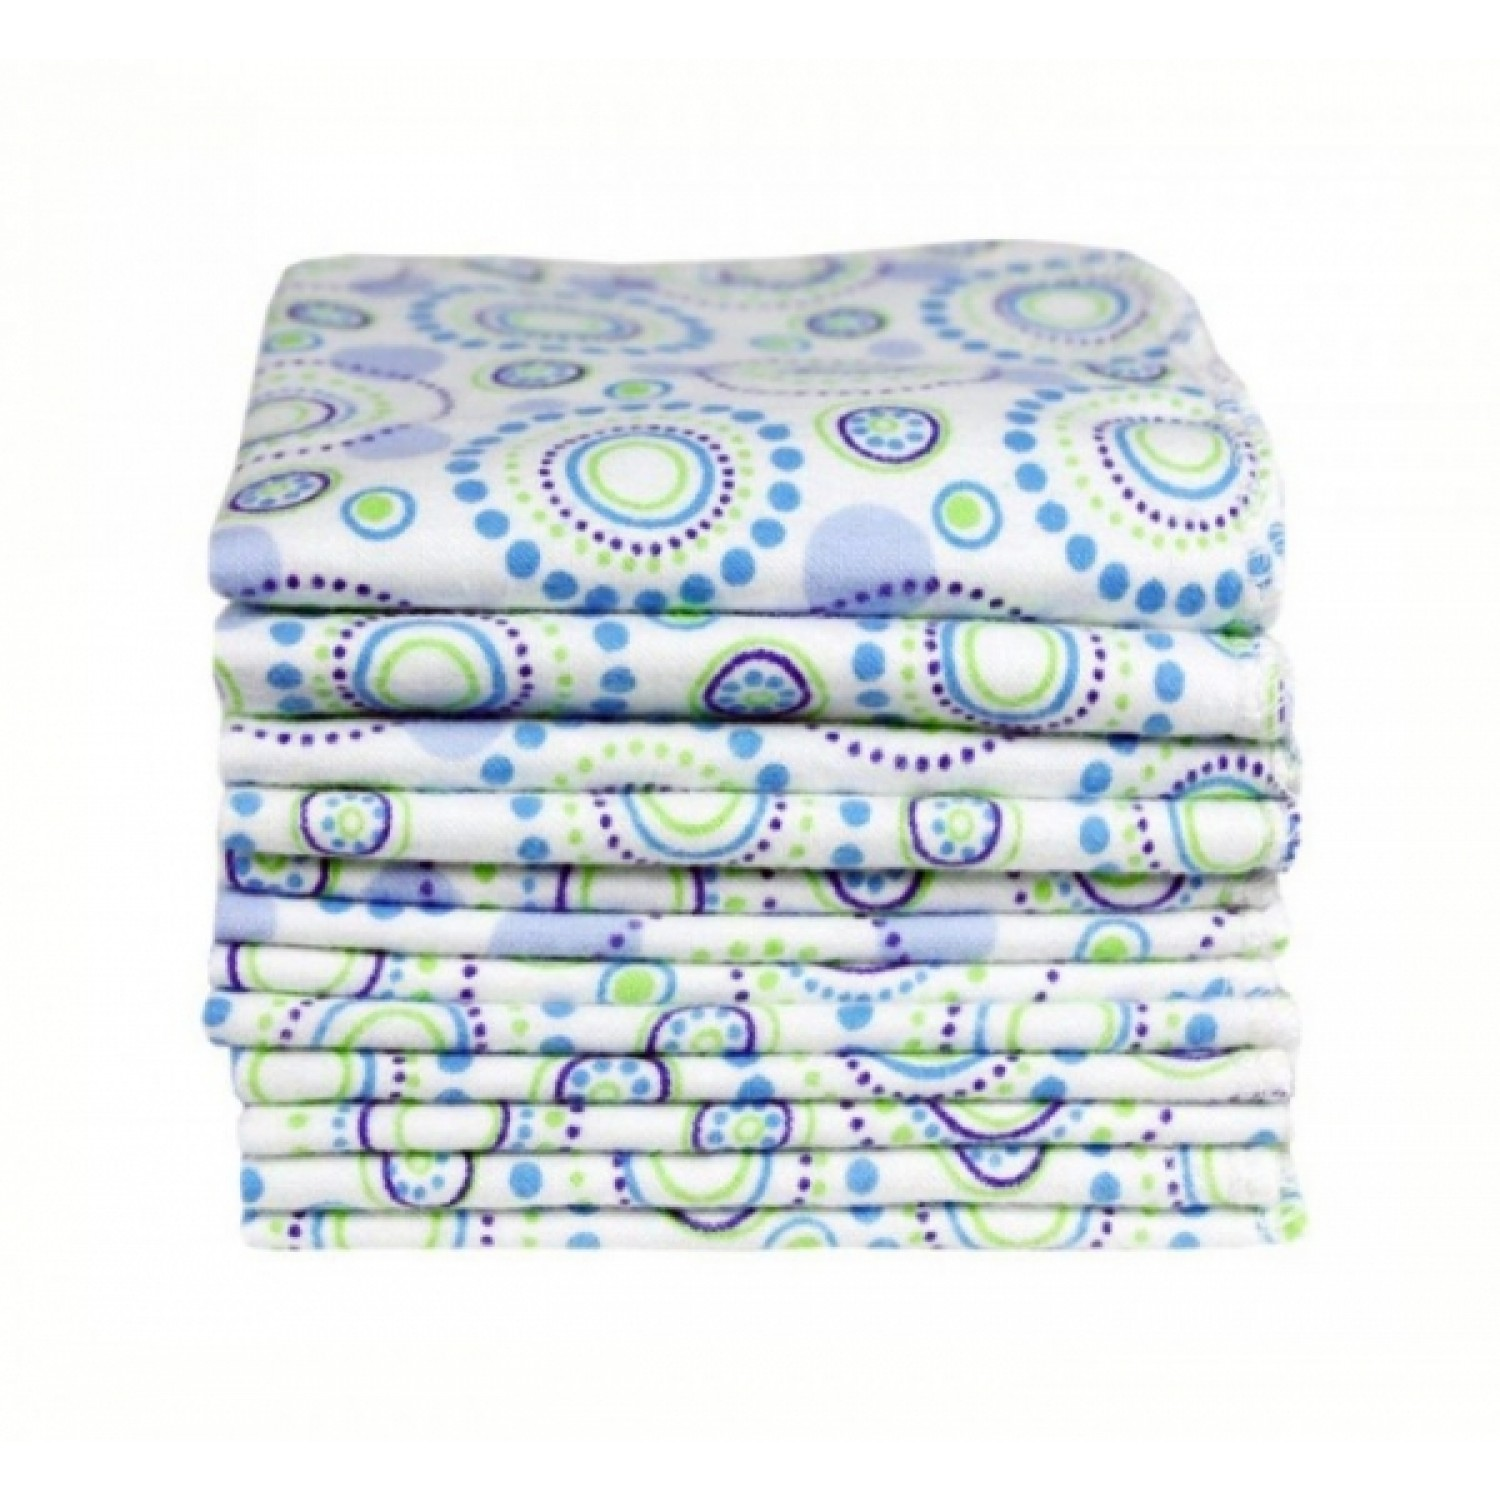 ImseVimse Washable Wipes pack of 12 Orbit